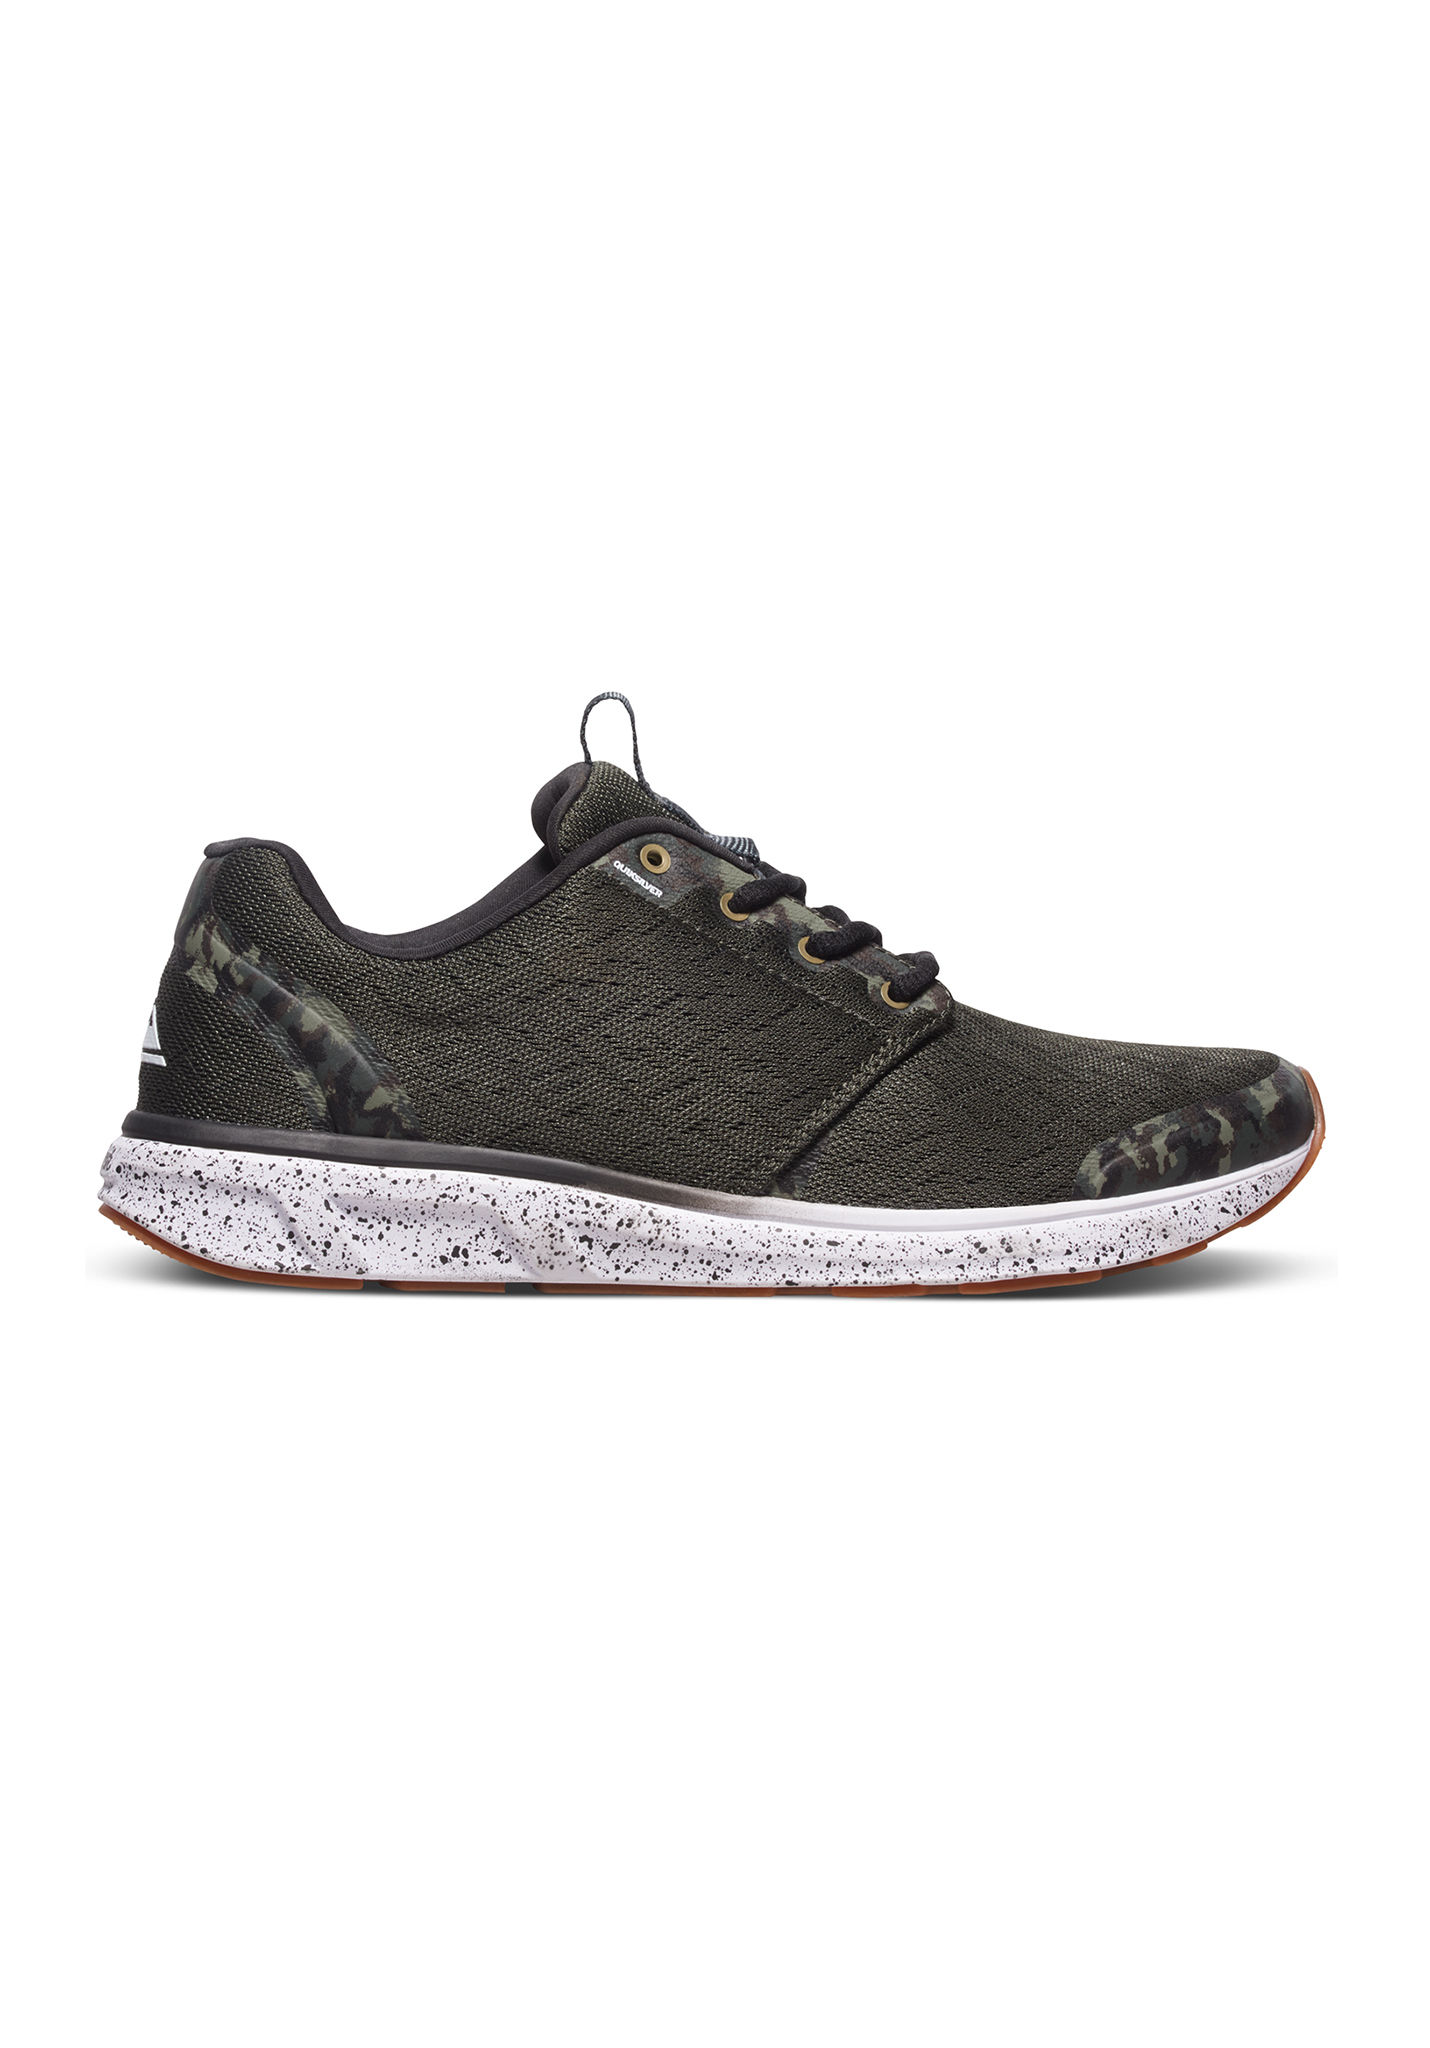 b1e437d9 Quiksilver Voyage Deluxe - Sneakers for Men - Green - Planet Sports